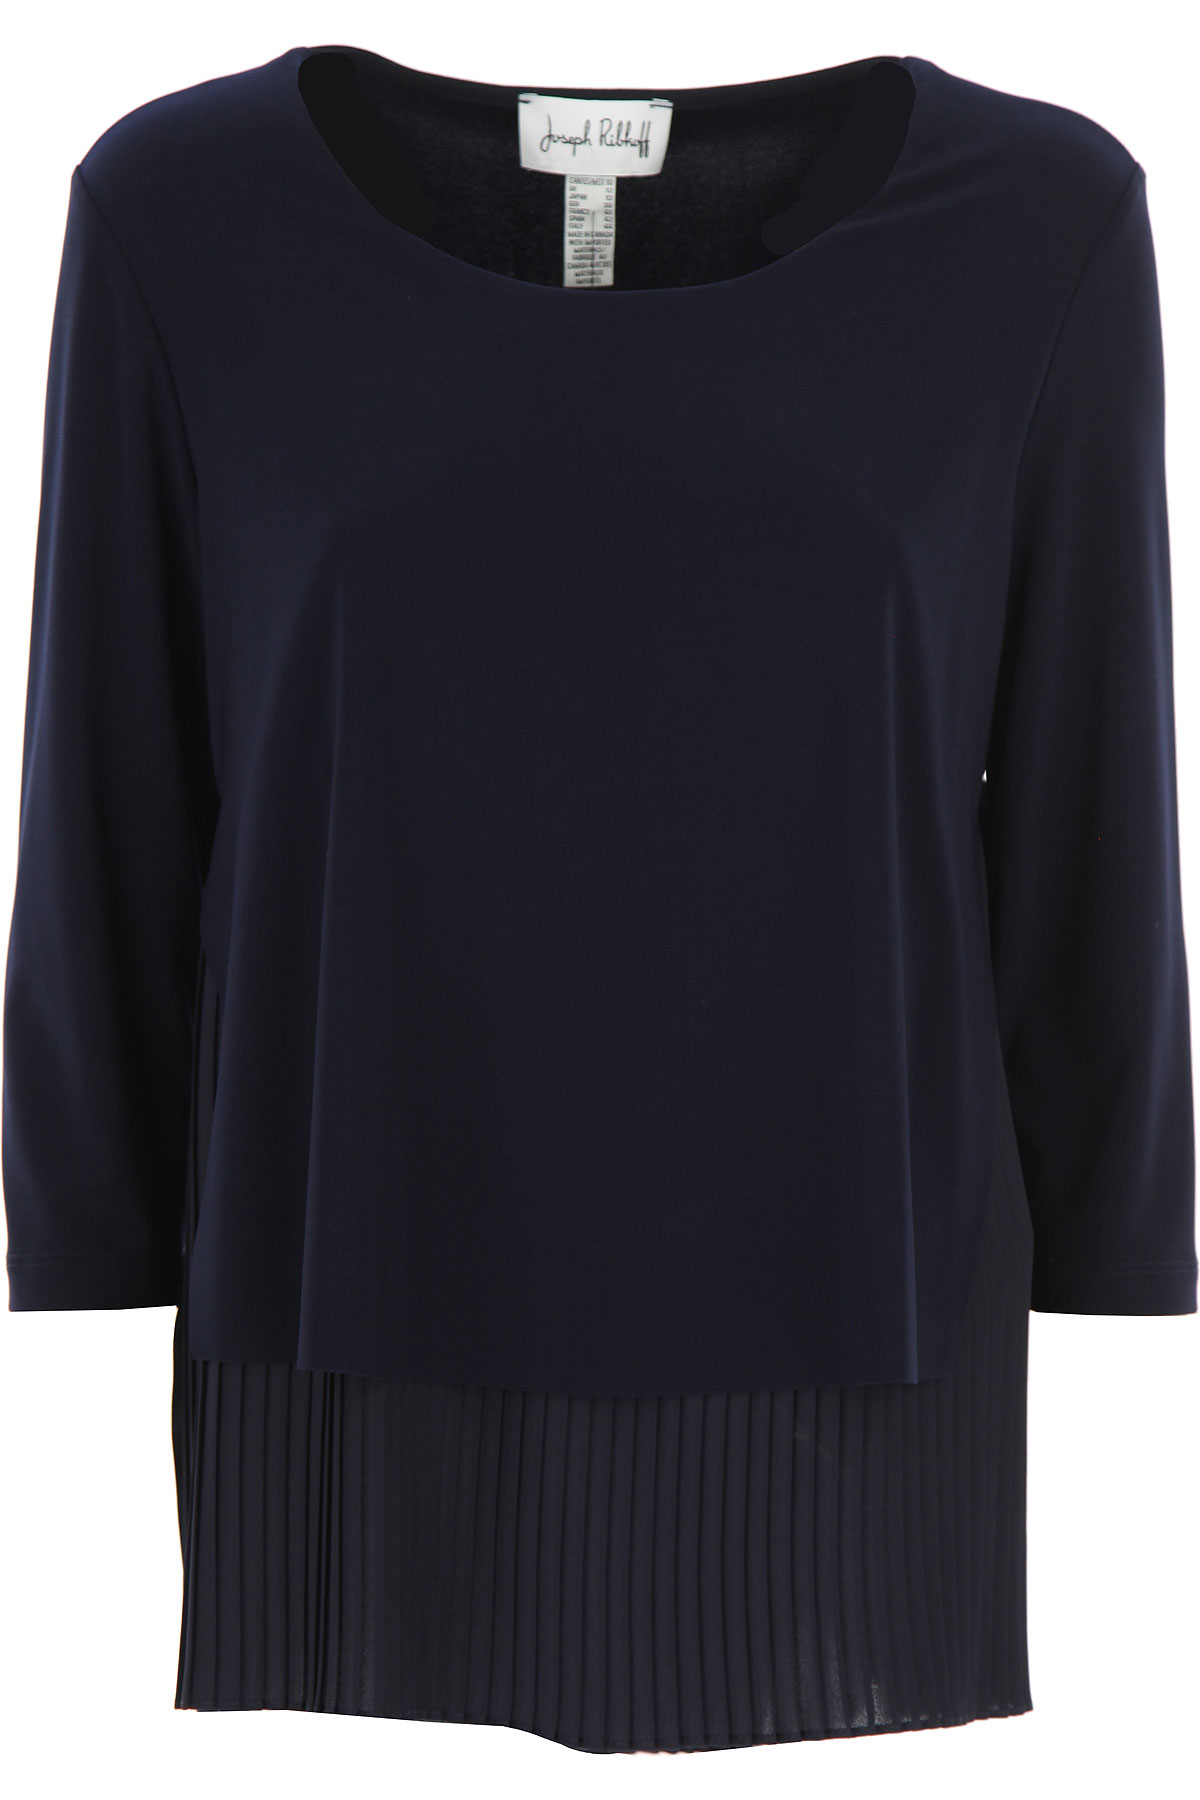 Joseph Ribkoff Top for Women On Sale, Midnight Blue, polyester, 2019, 10 14 8